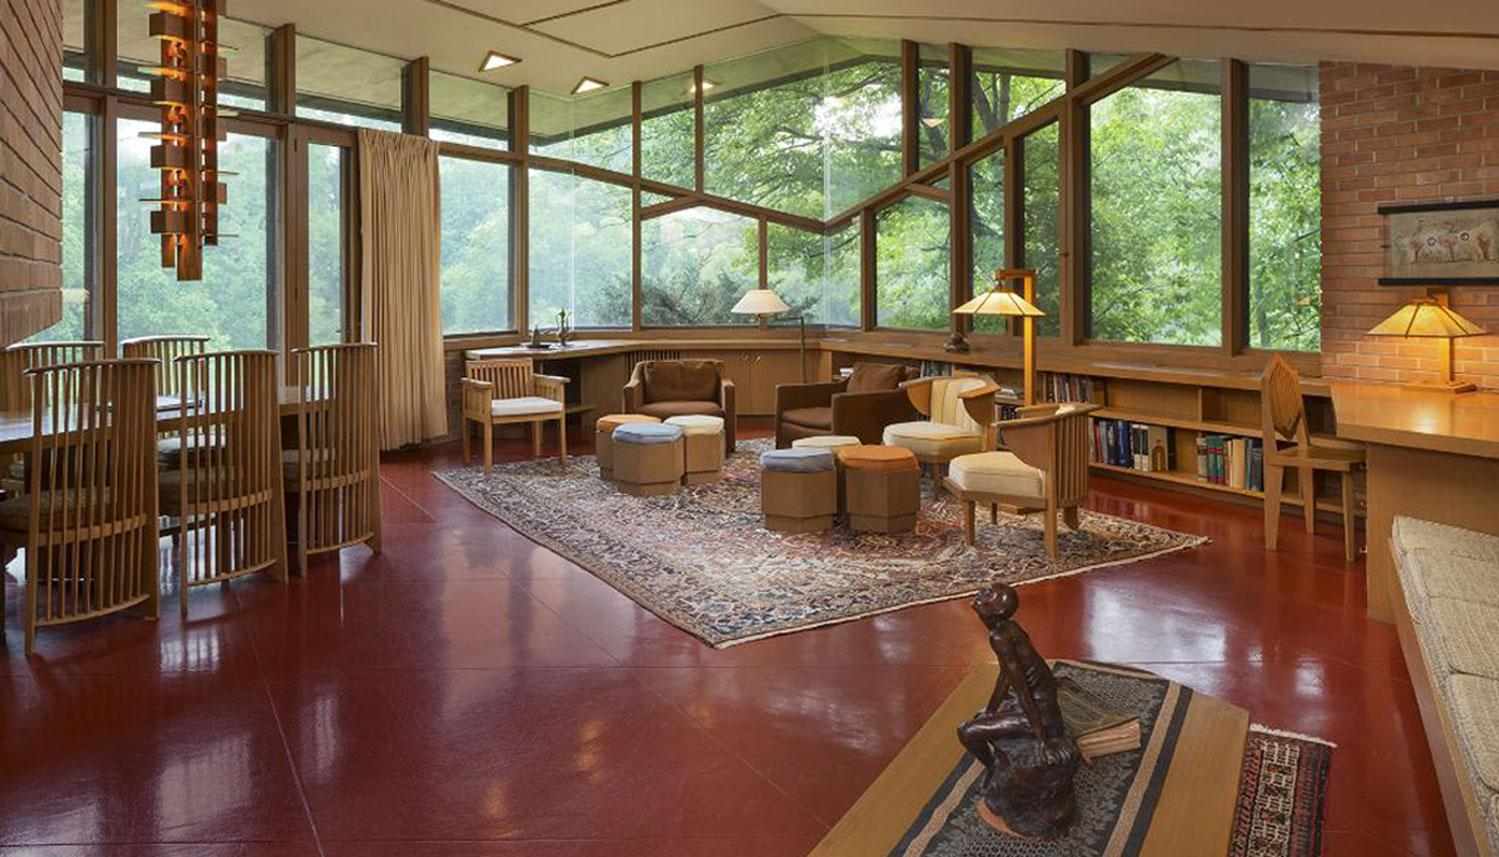 frank lloyd wright furniture completing the vision